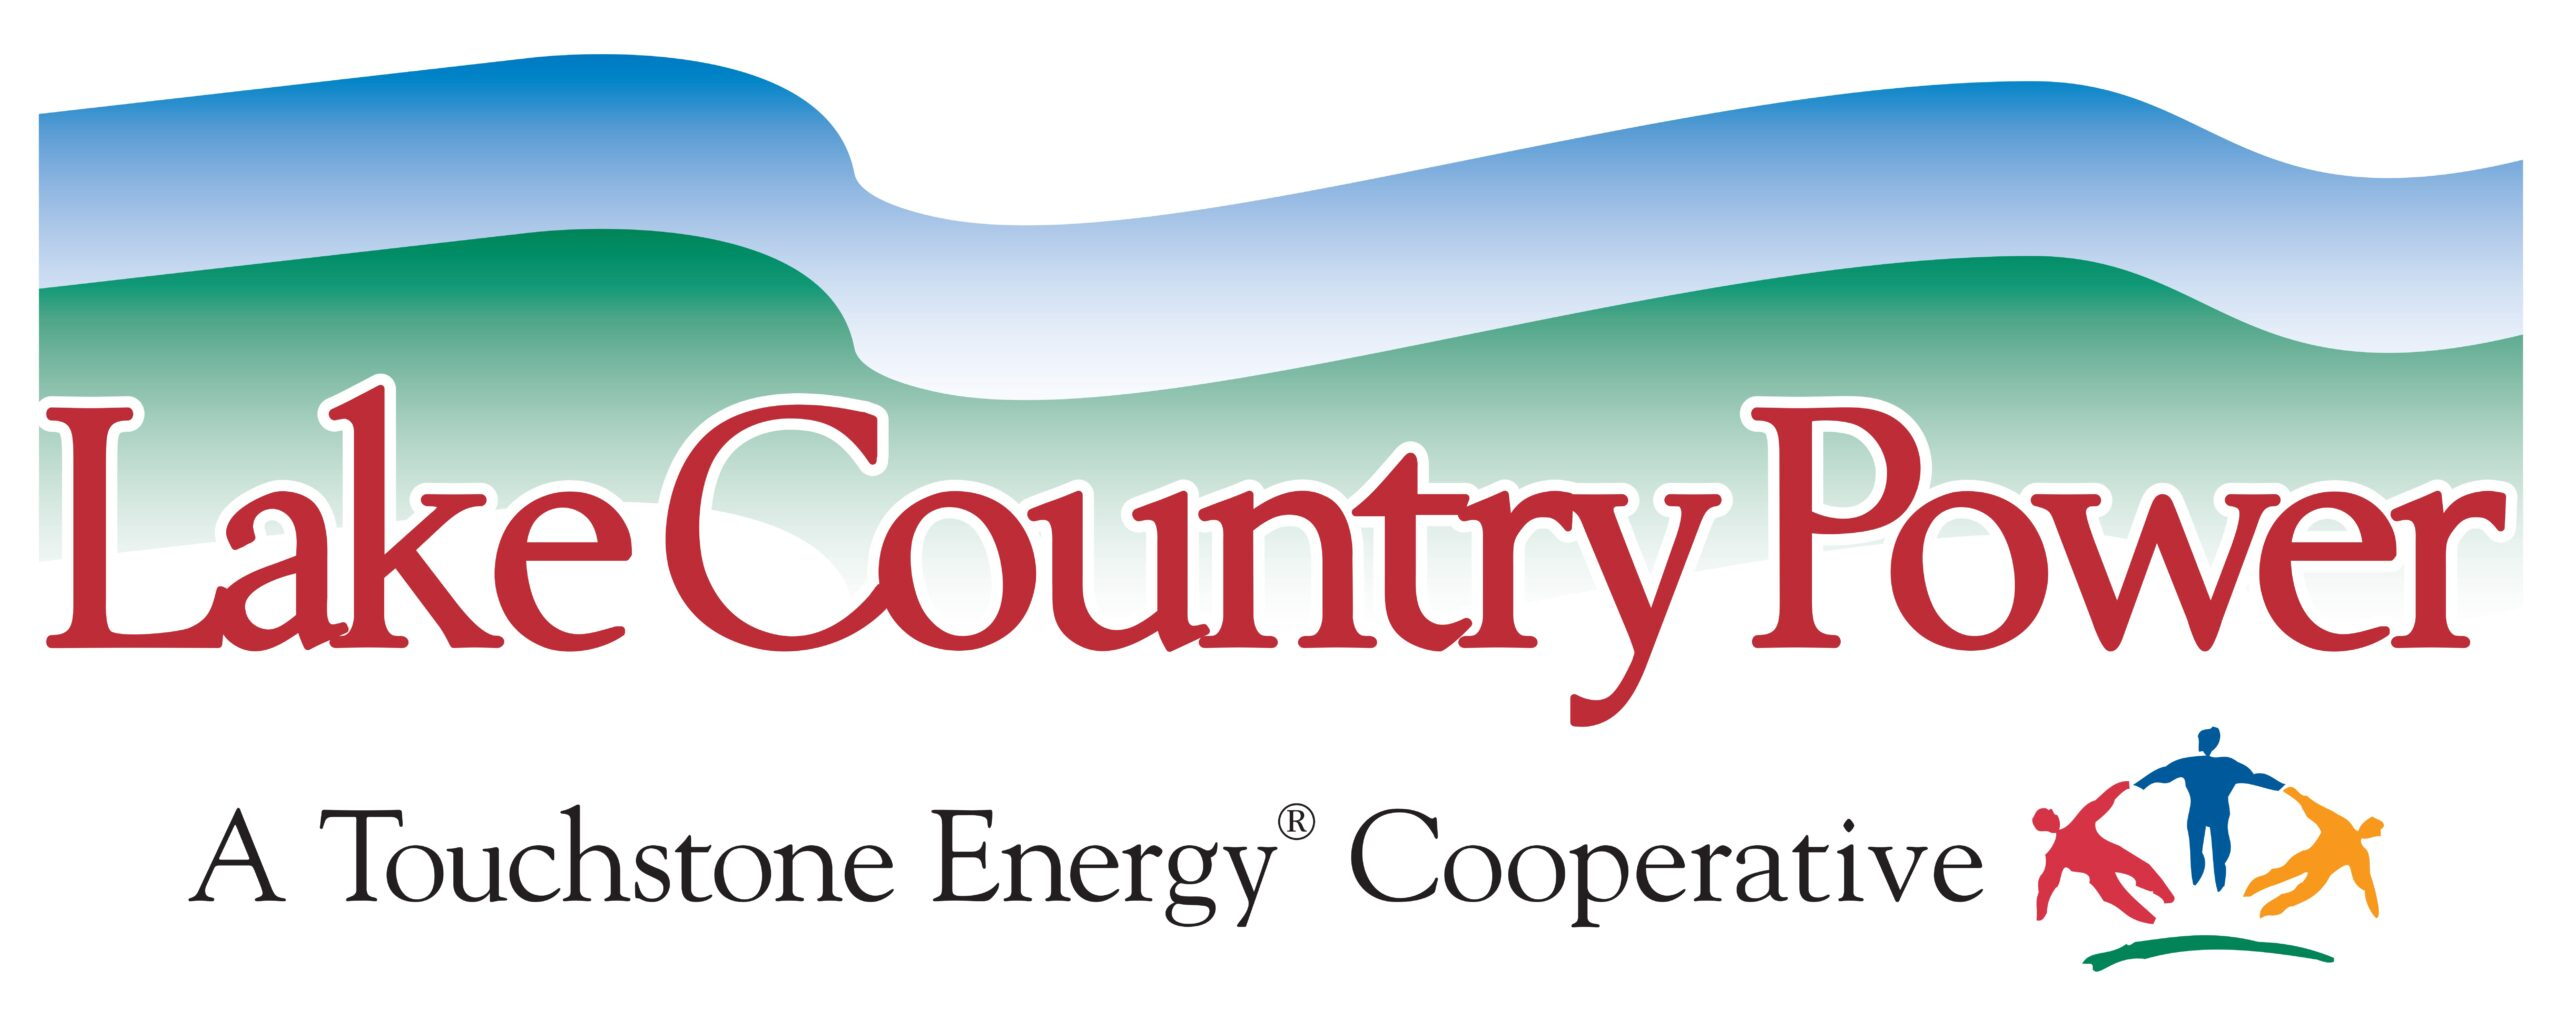 Lake Country Power - A Touchtone Energy Cooperative Logo